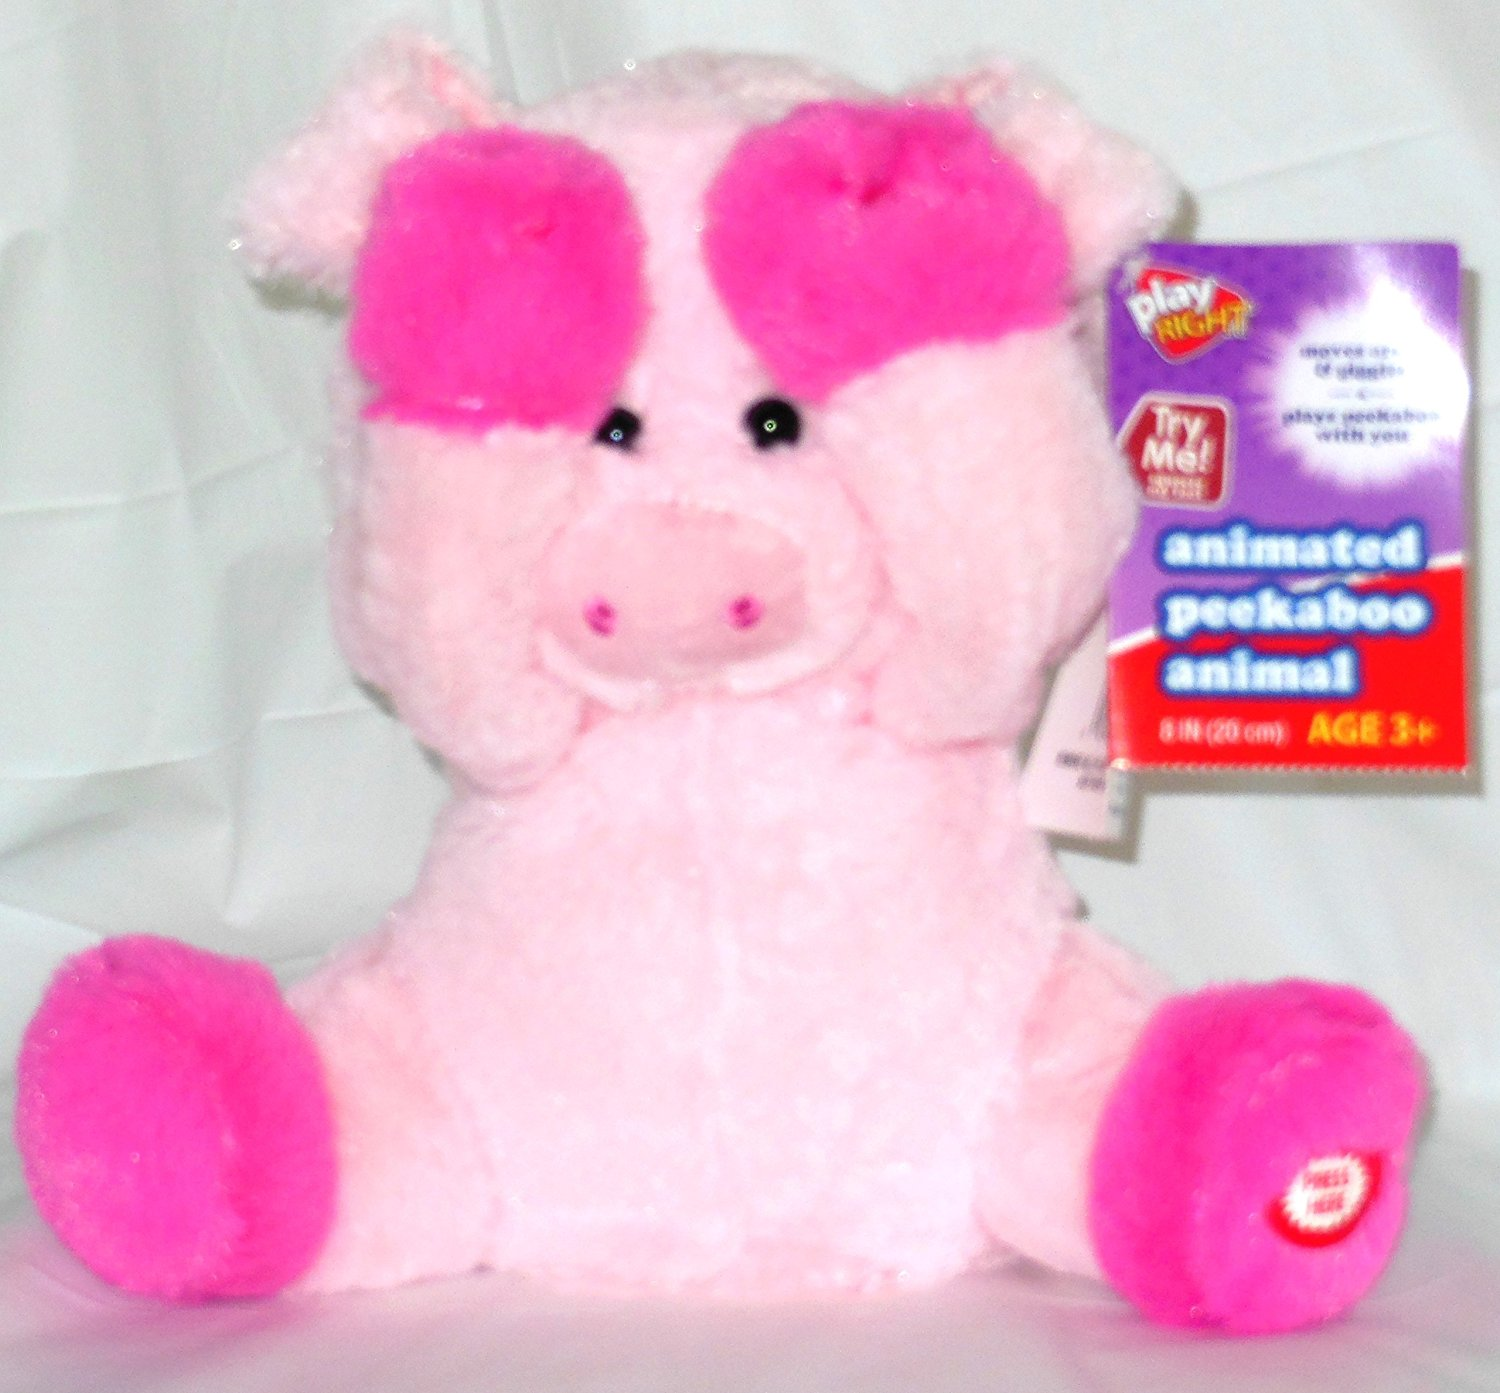 Peekaboo plush animated animal pig plays peekaboo and talks. Children laugh over and over. Great Fun!!!